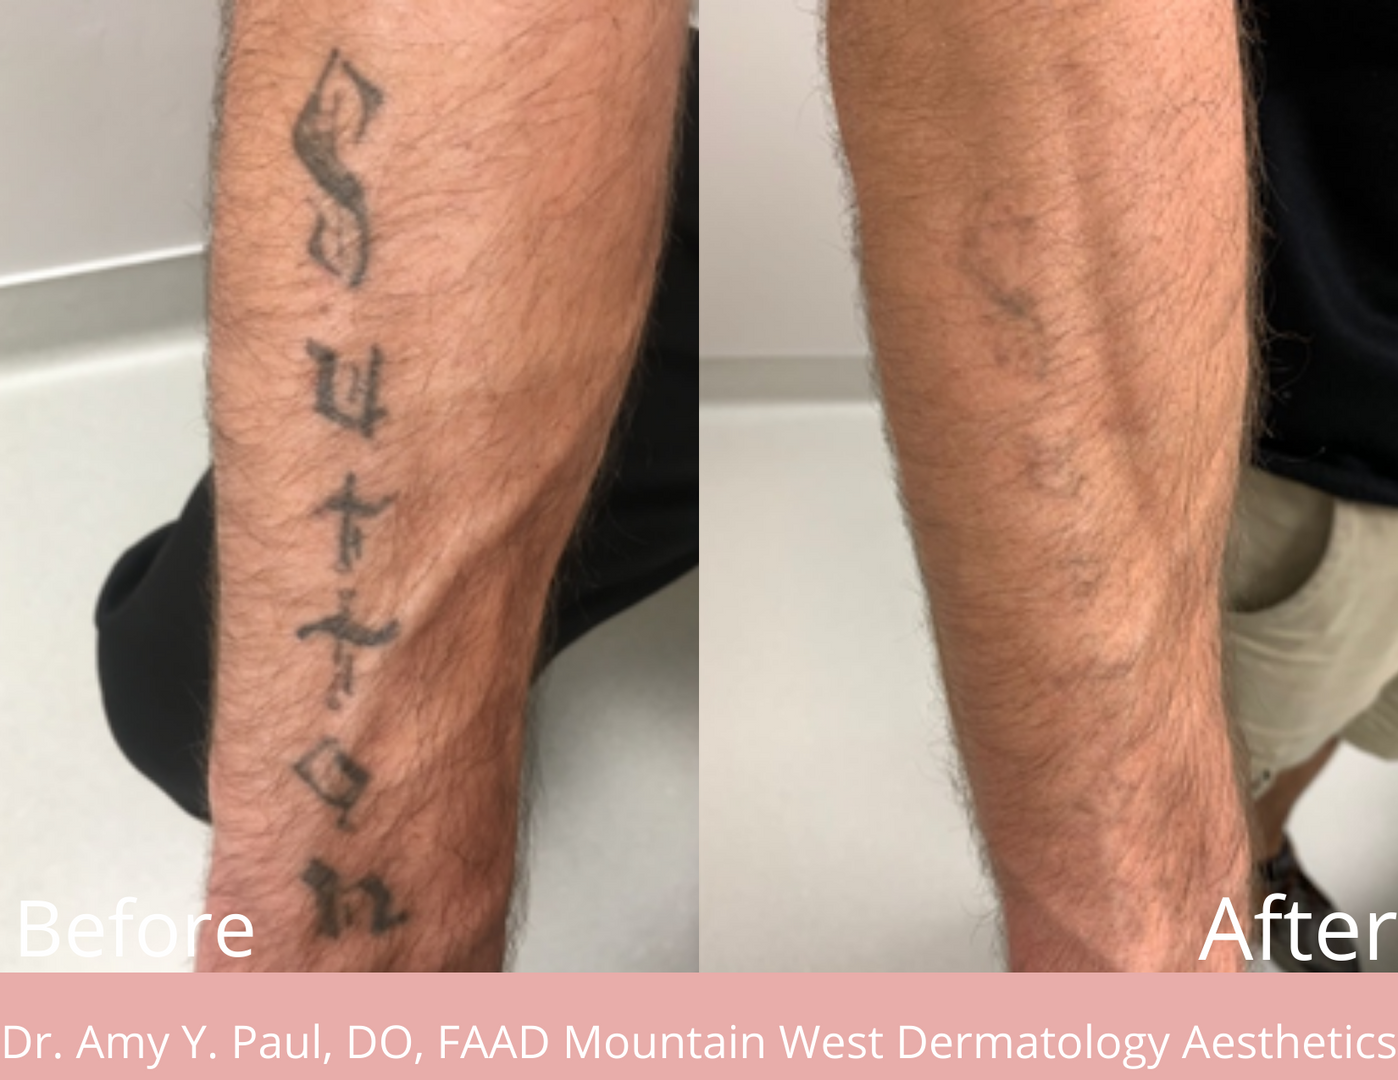 Tattoo Removal by Dr. Amy Paul